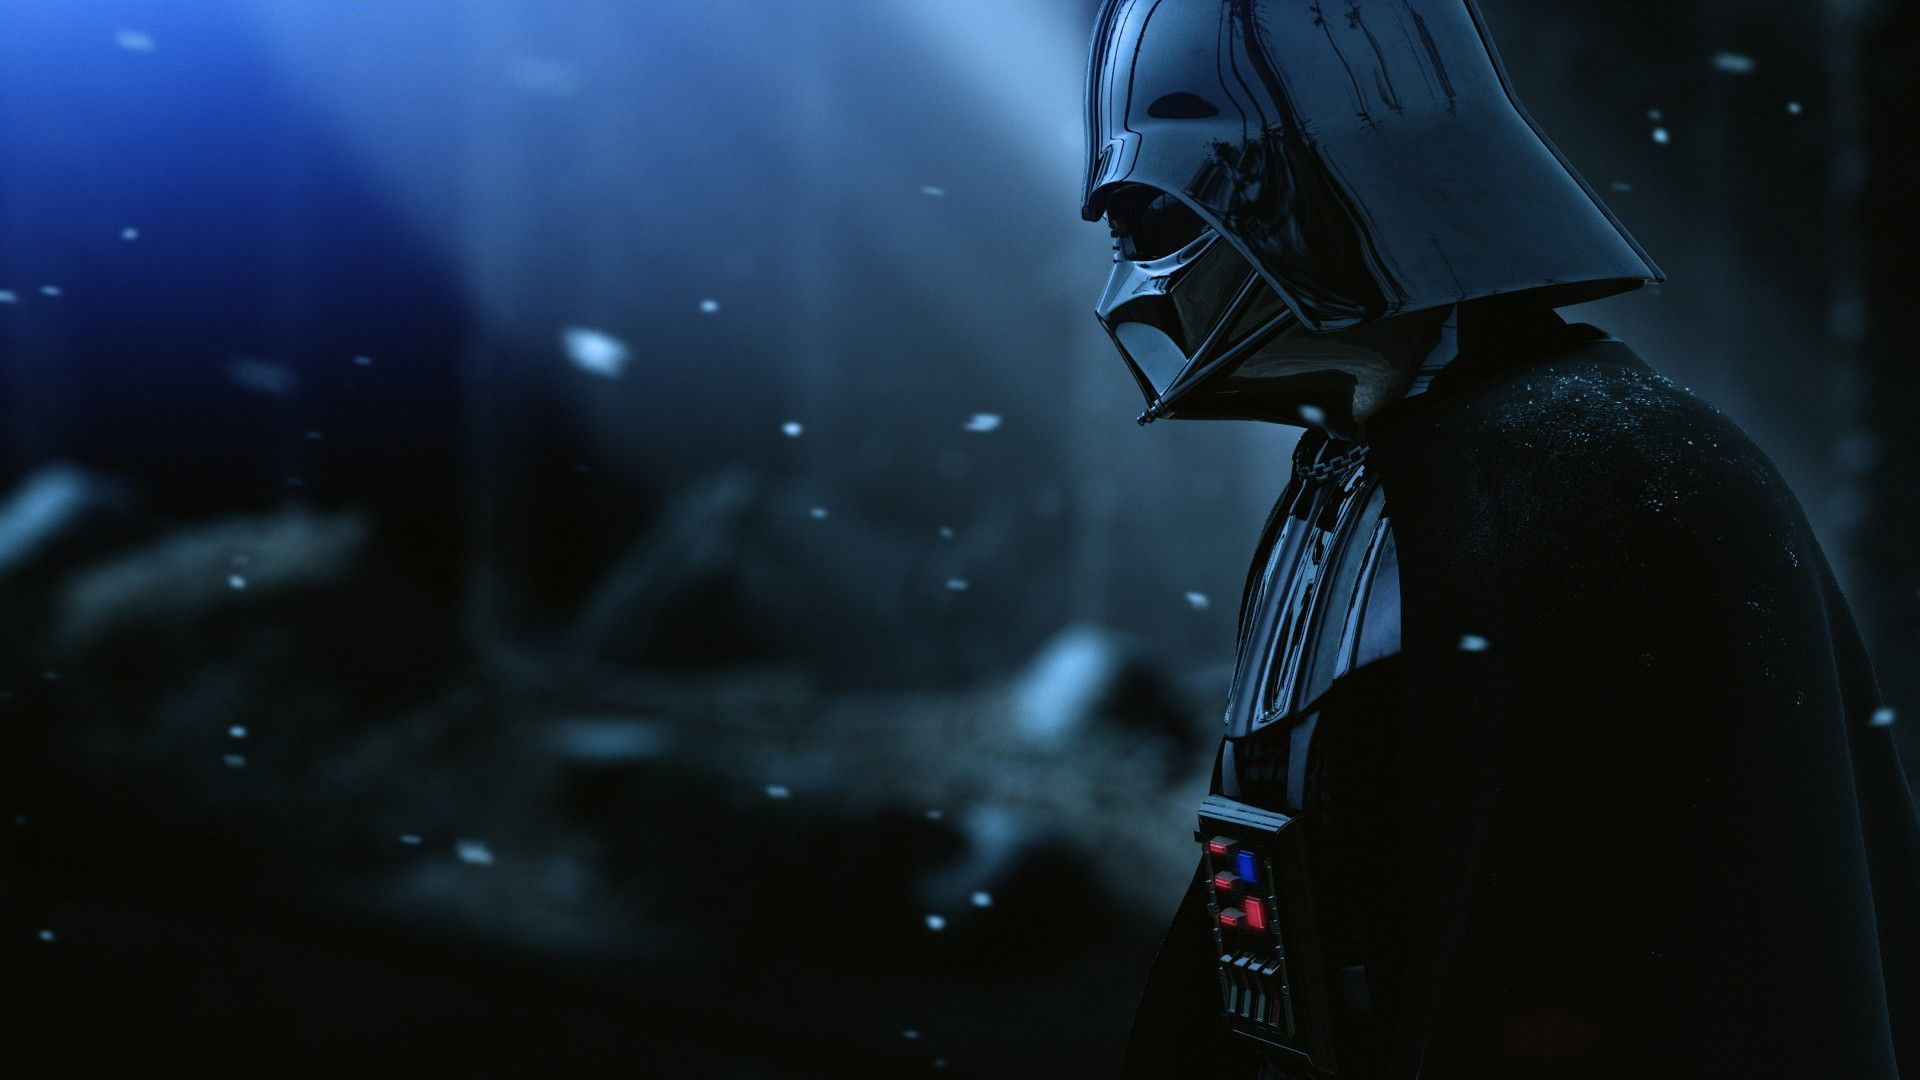 Star Wars Wallpaper 1080p